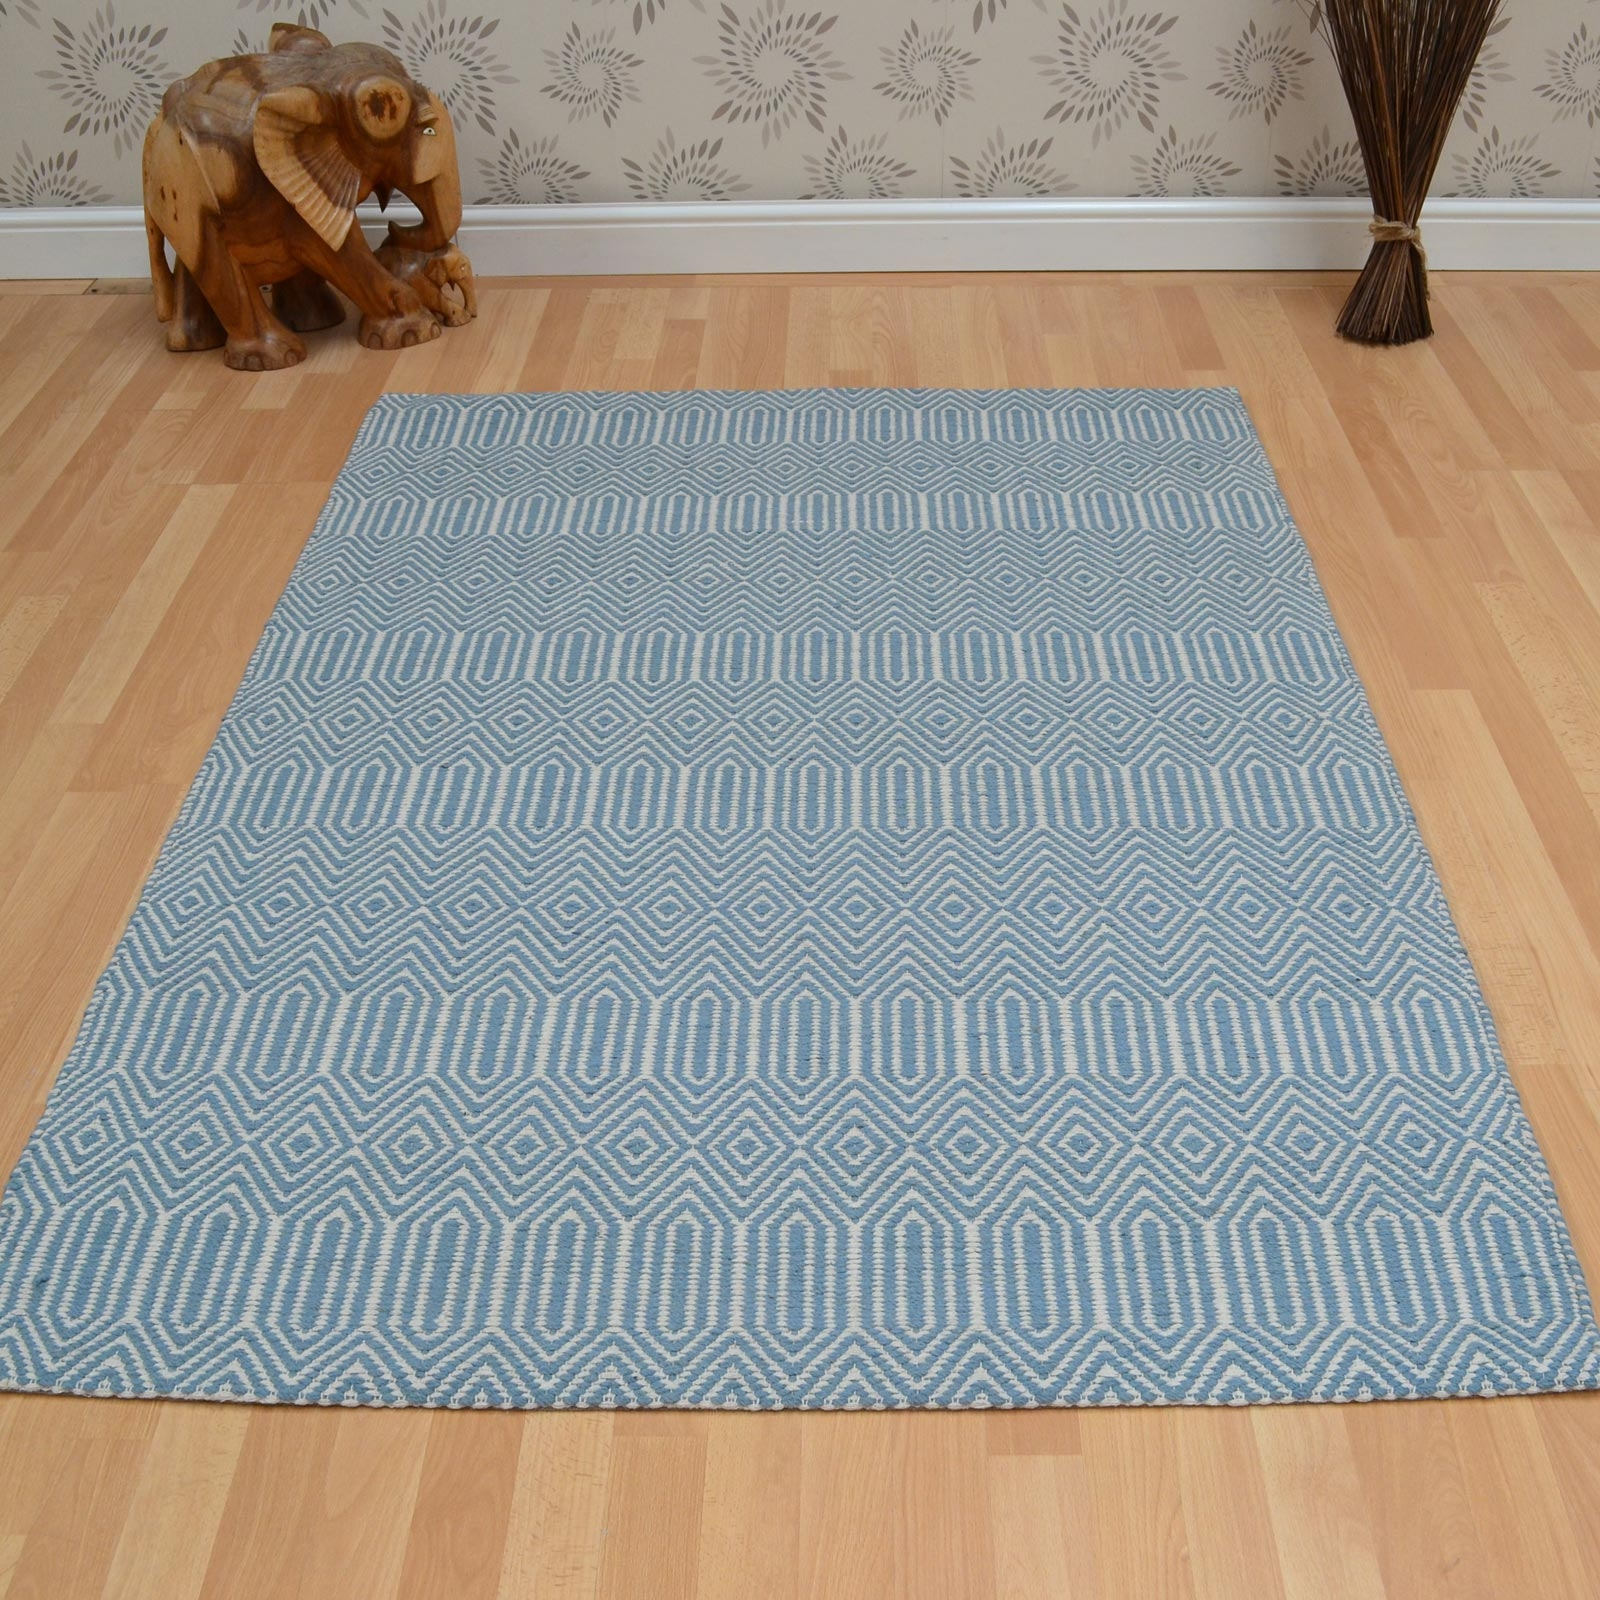 Sloan Rugs In Duck Egg Free Uk Delivery The Rug Seller Throughout Duck Egg Rugs (Image 14 of 15)